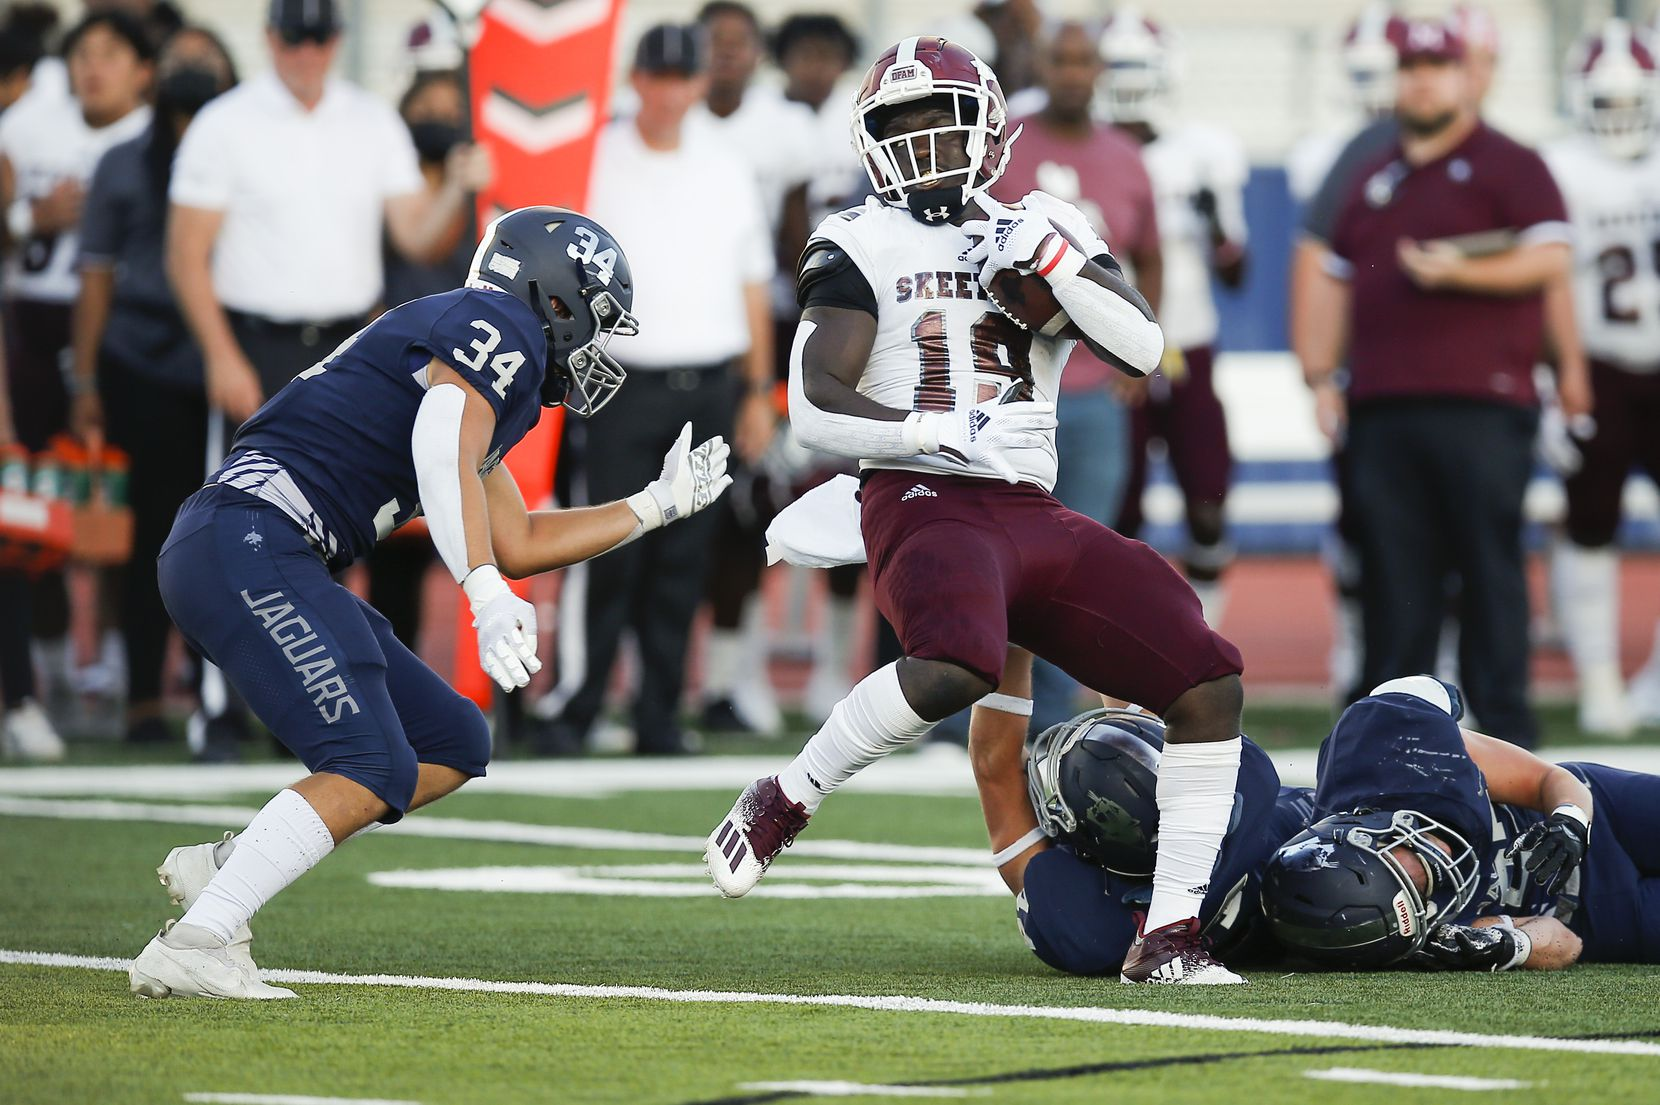 Mesquite senior running back Anthony Roberts (19) carries the ball as Flower Mound senior defensive end Luke Browning (34) defends during the first half of a high school football game at Flower Mound High School, Friday, August 27, 2021. (Brandon Wade/Special Contributor)